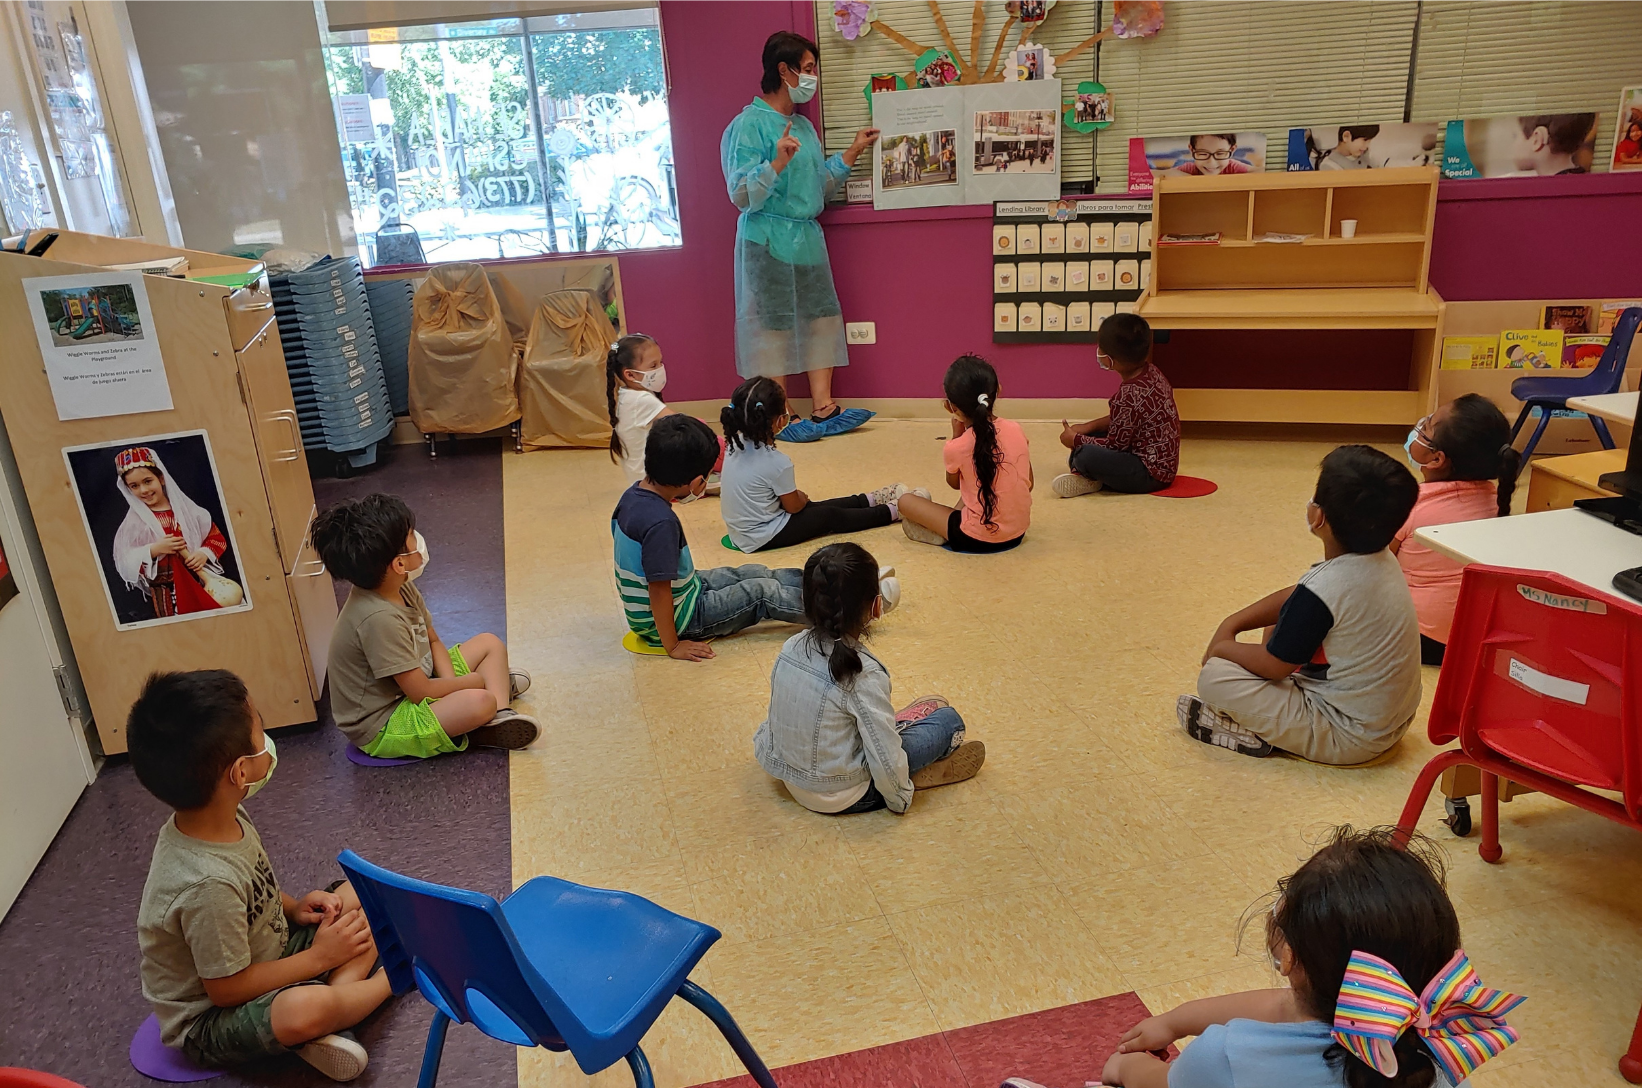 Young children in a socially-distanced classroom